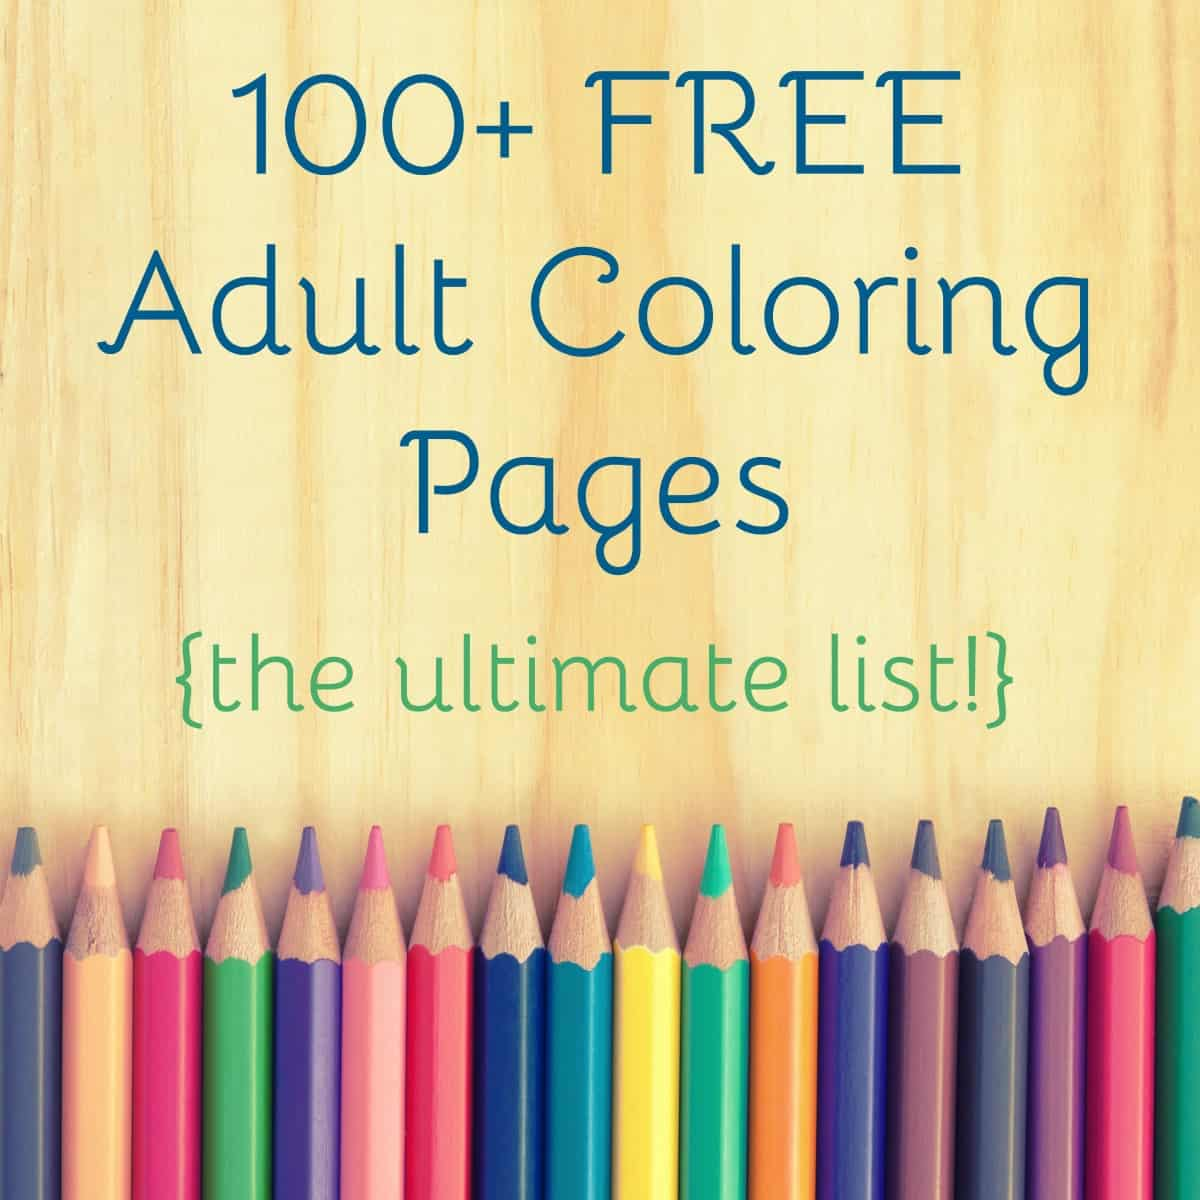 get links to over 100 free coloring pages youll love these favorites including - Free Adult Coloring Pages To Print